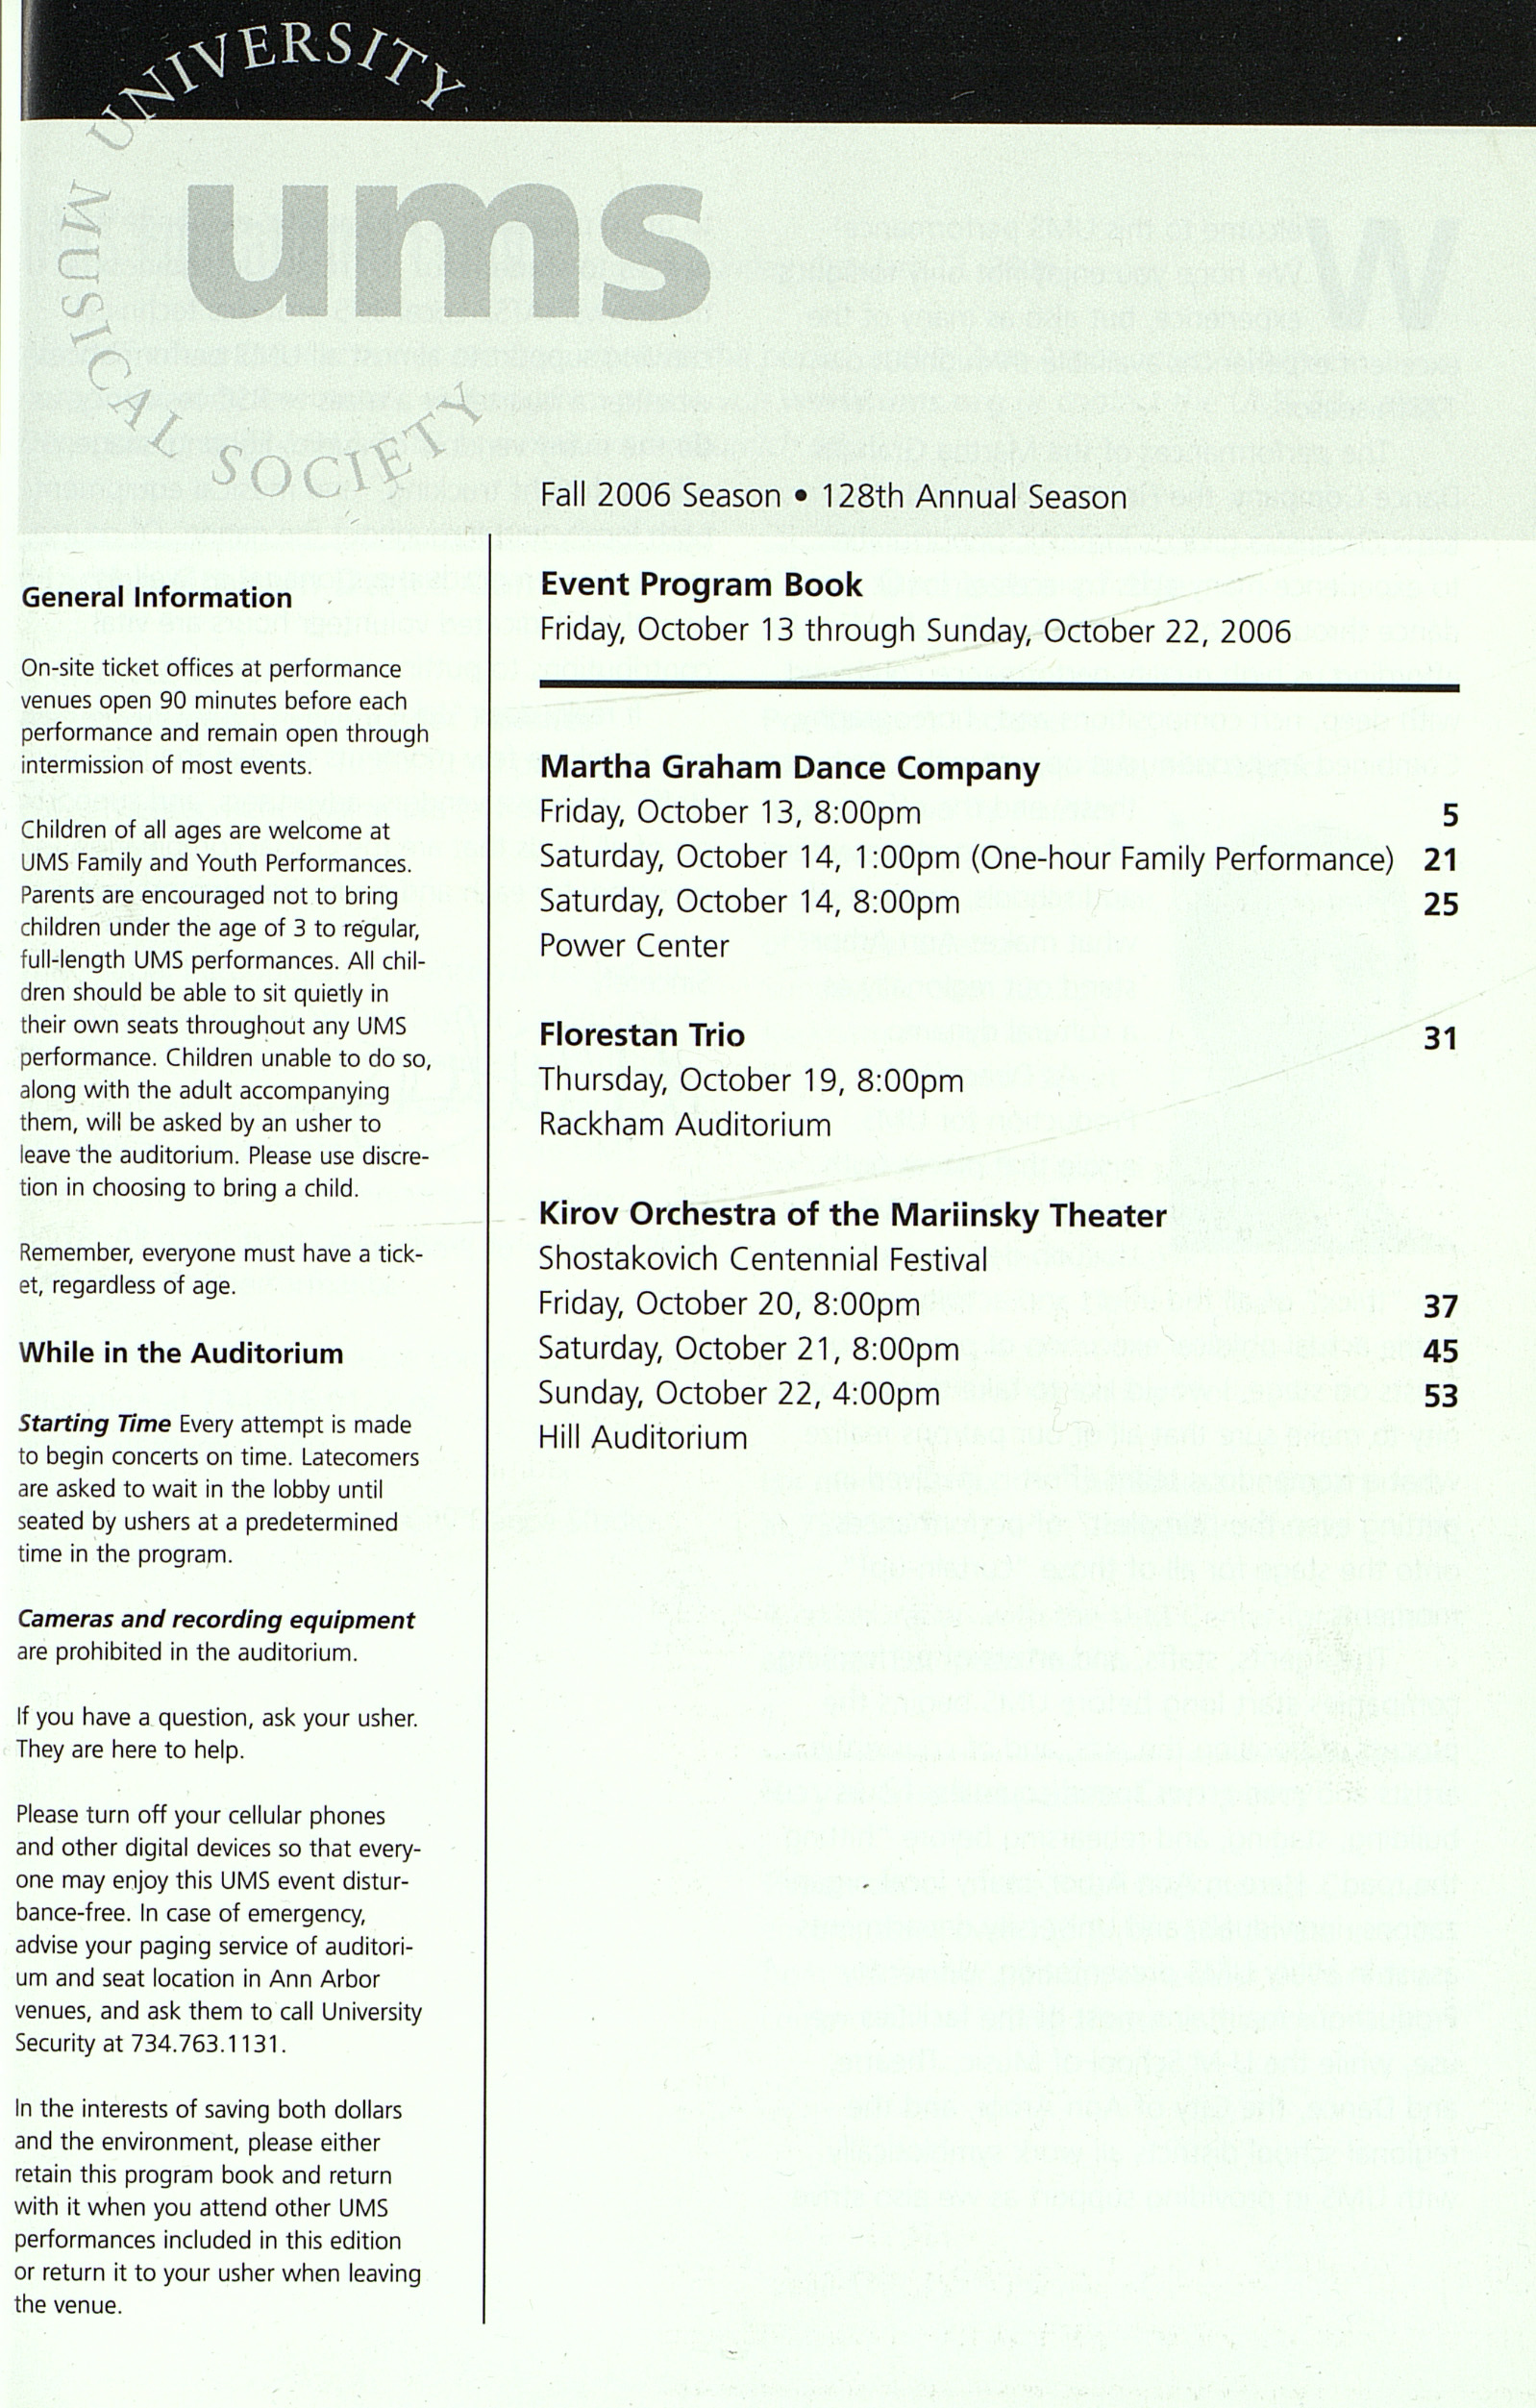 UMS Concert Program, Friday, Oct. 13 To Oct. 22: University Musical Society: Fall 2006 - Friday, Oct. 13 To Oct. 22 image